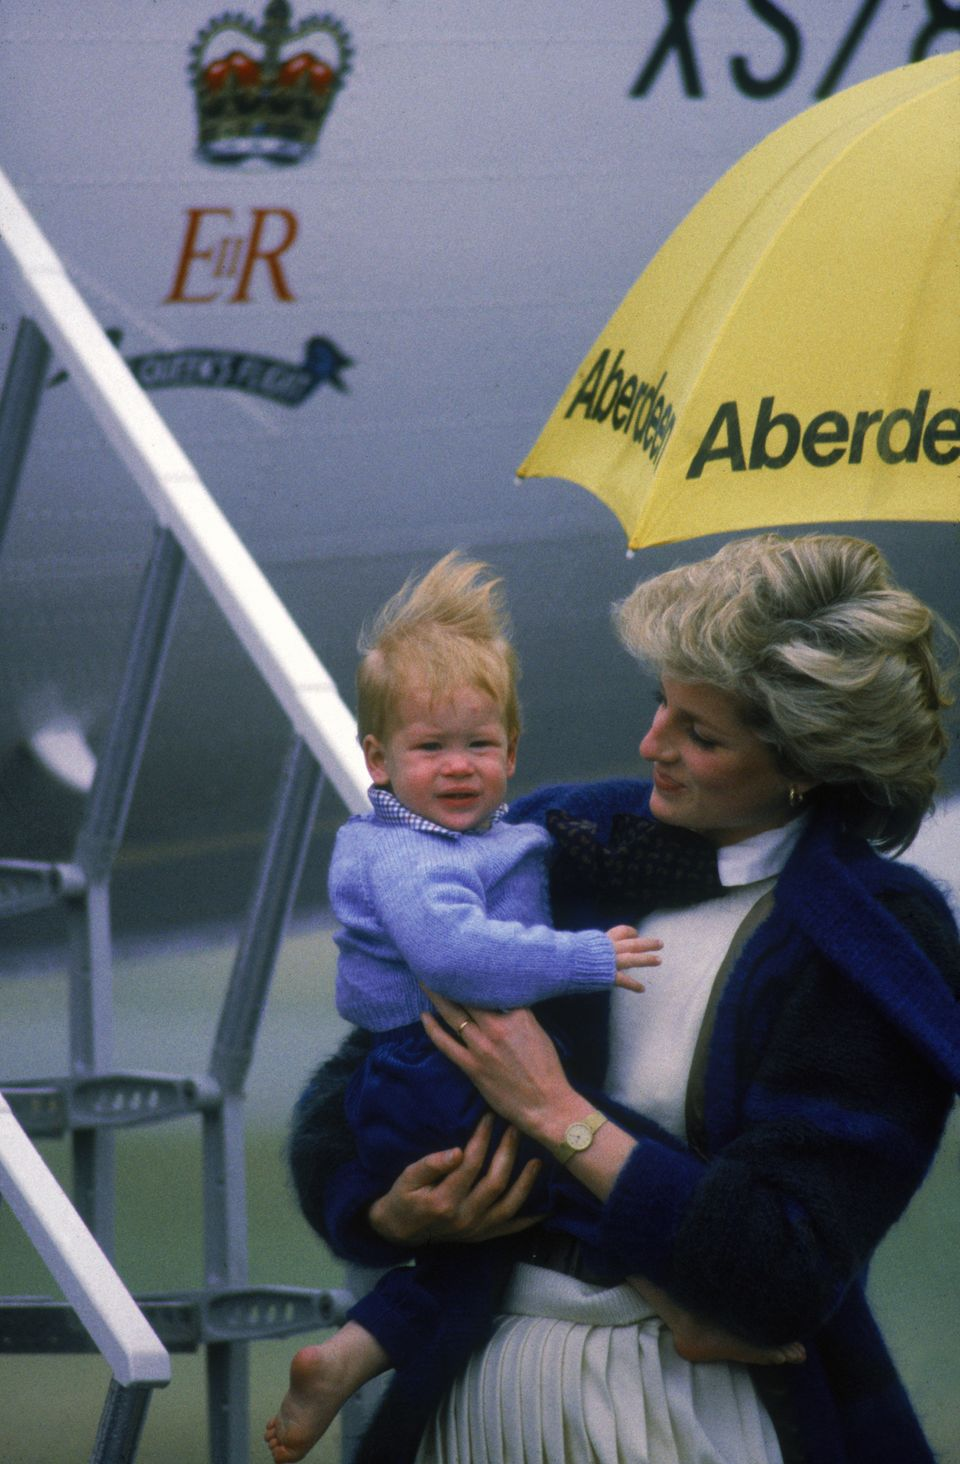 At the Aberdeen airport with his mom, Princess Diana.